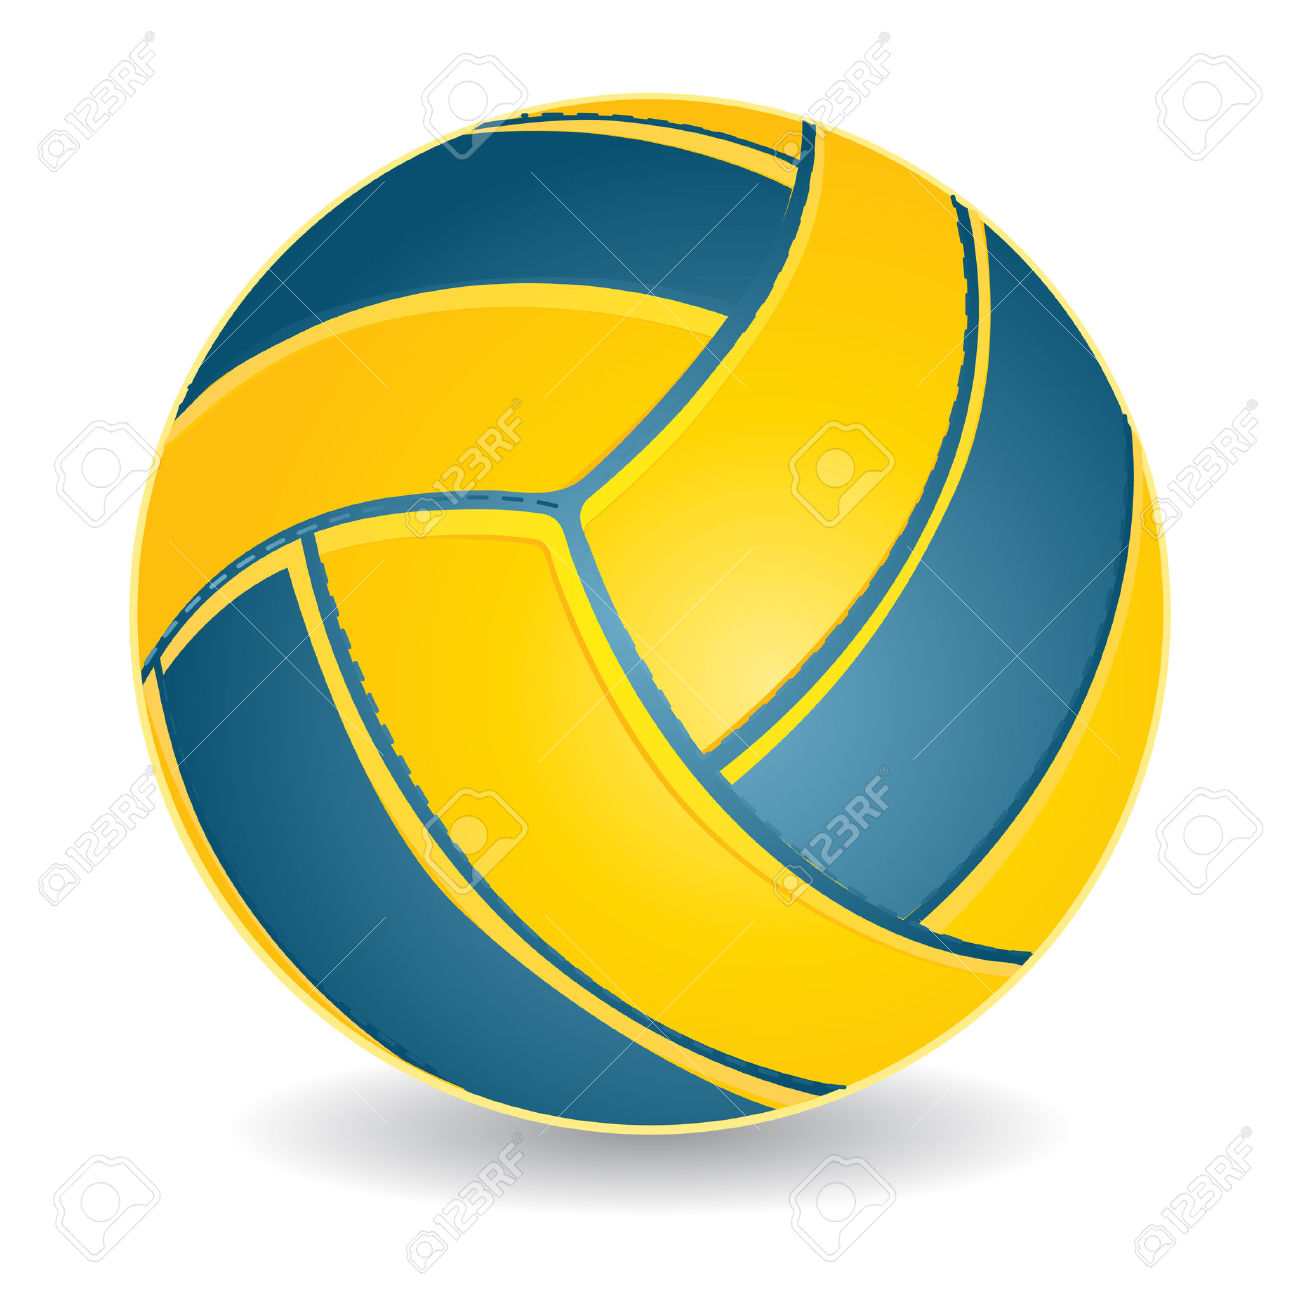 Blue And Yellow Volleyball Ball Isolated Over White, Vector.